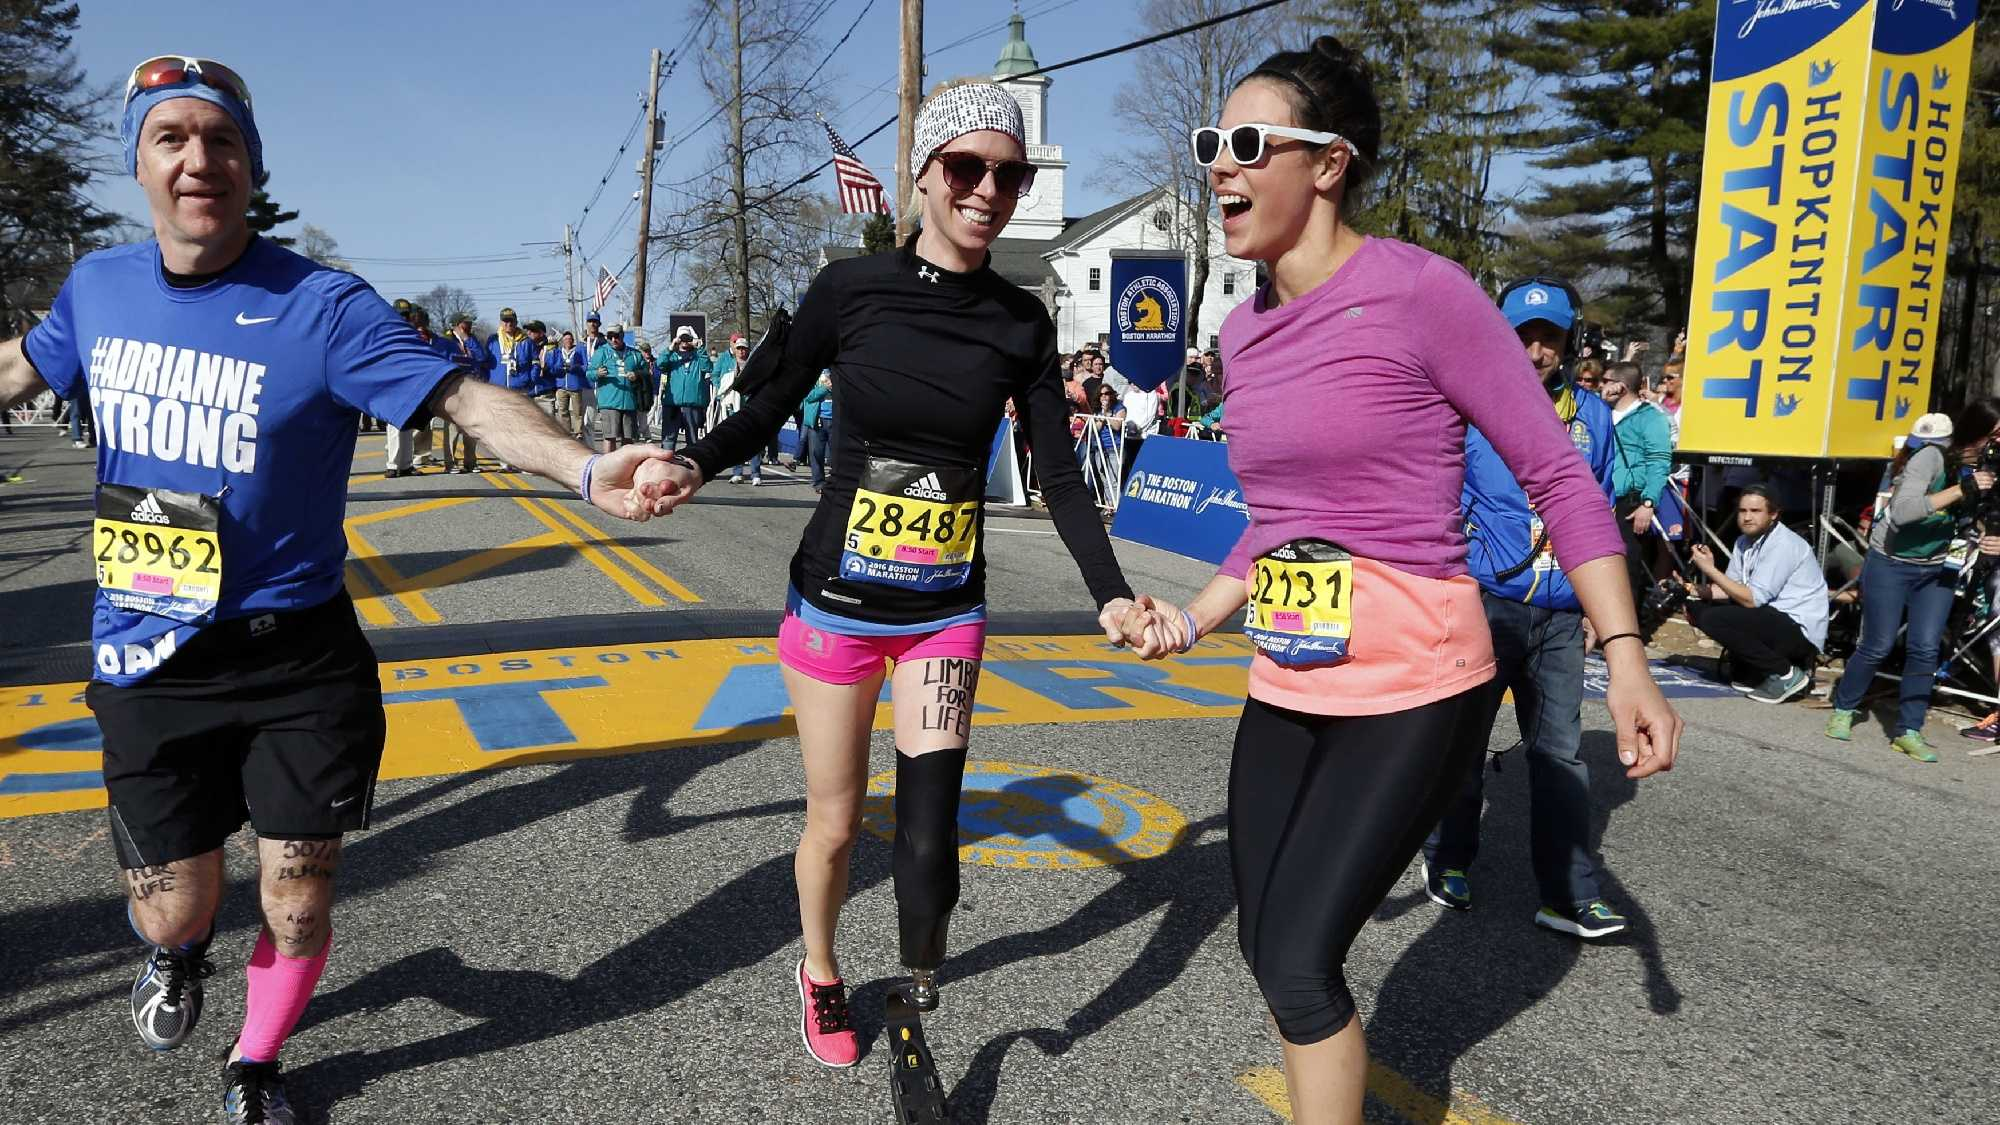 Boston Marathon bombing survivor Adrianne Haslet, center, starts the 120th Boston Marathon.